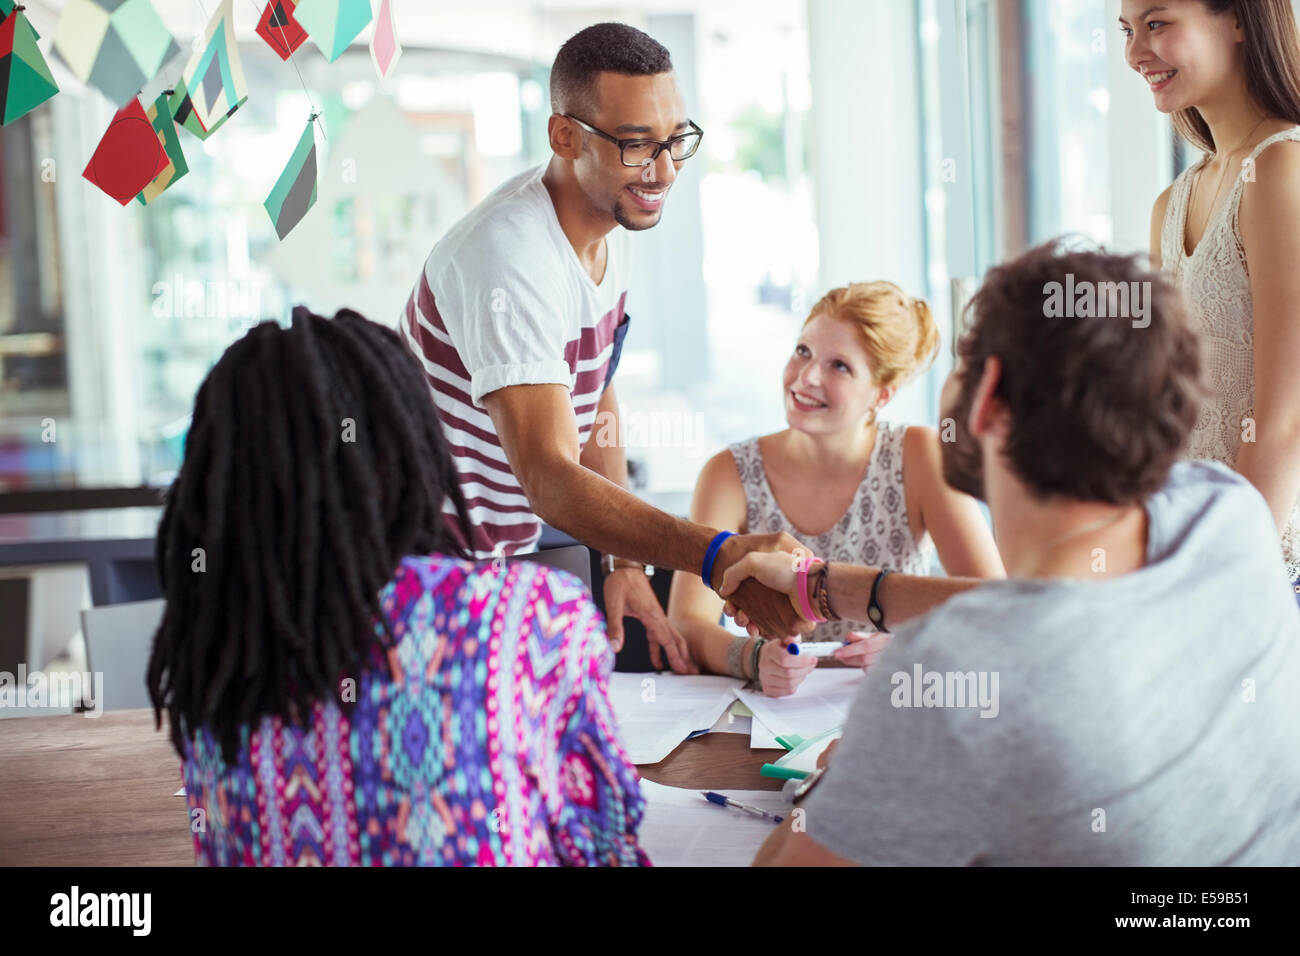 People shaking hands in office Photo Stock